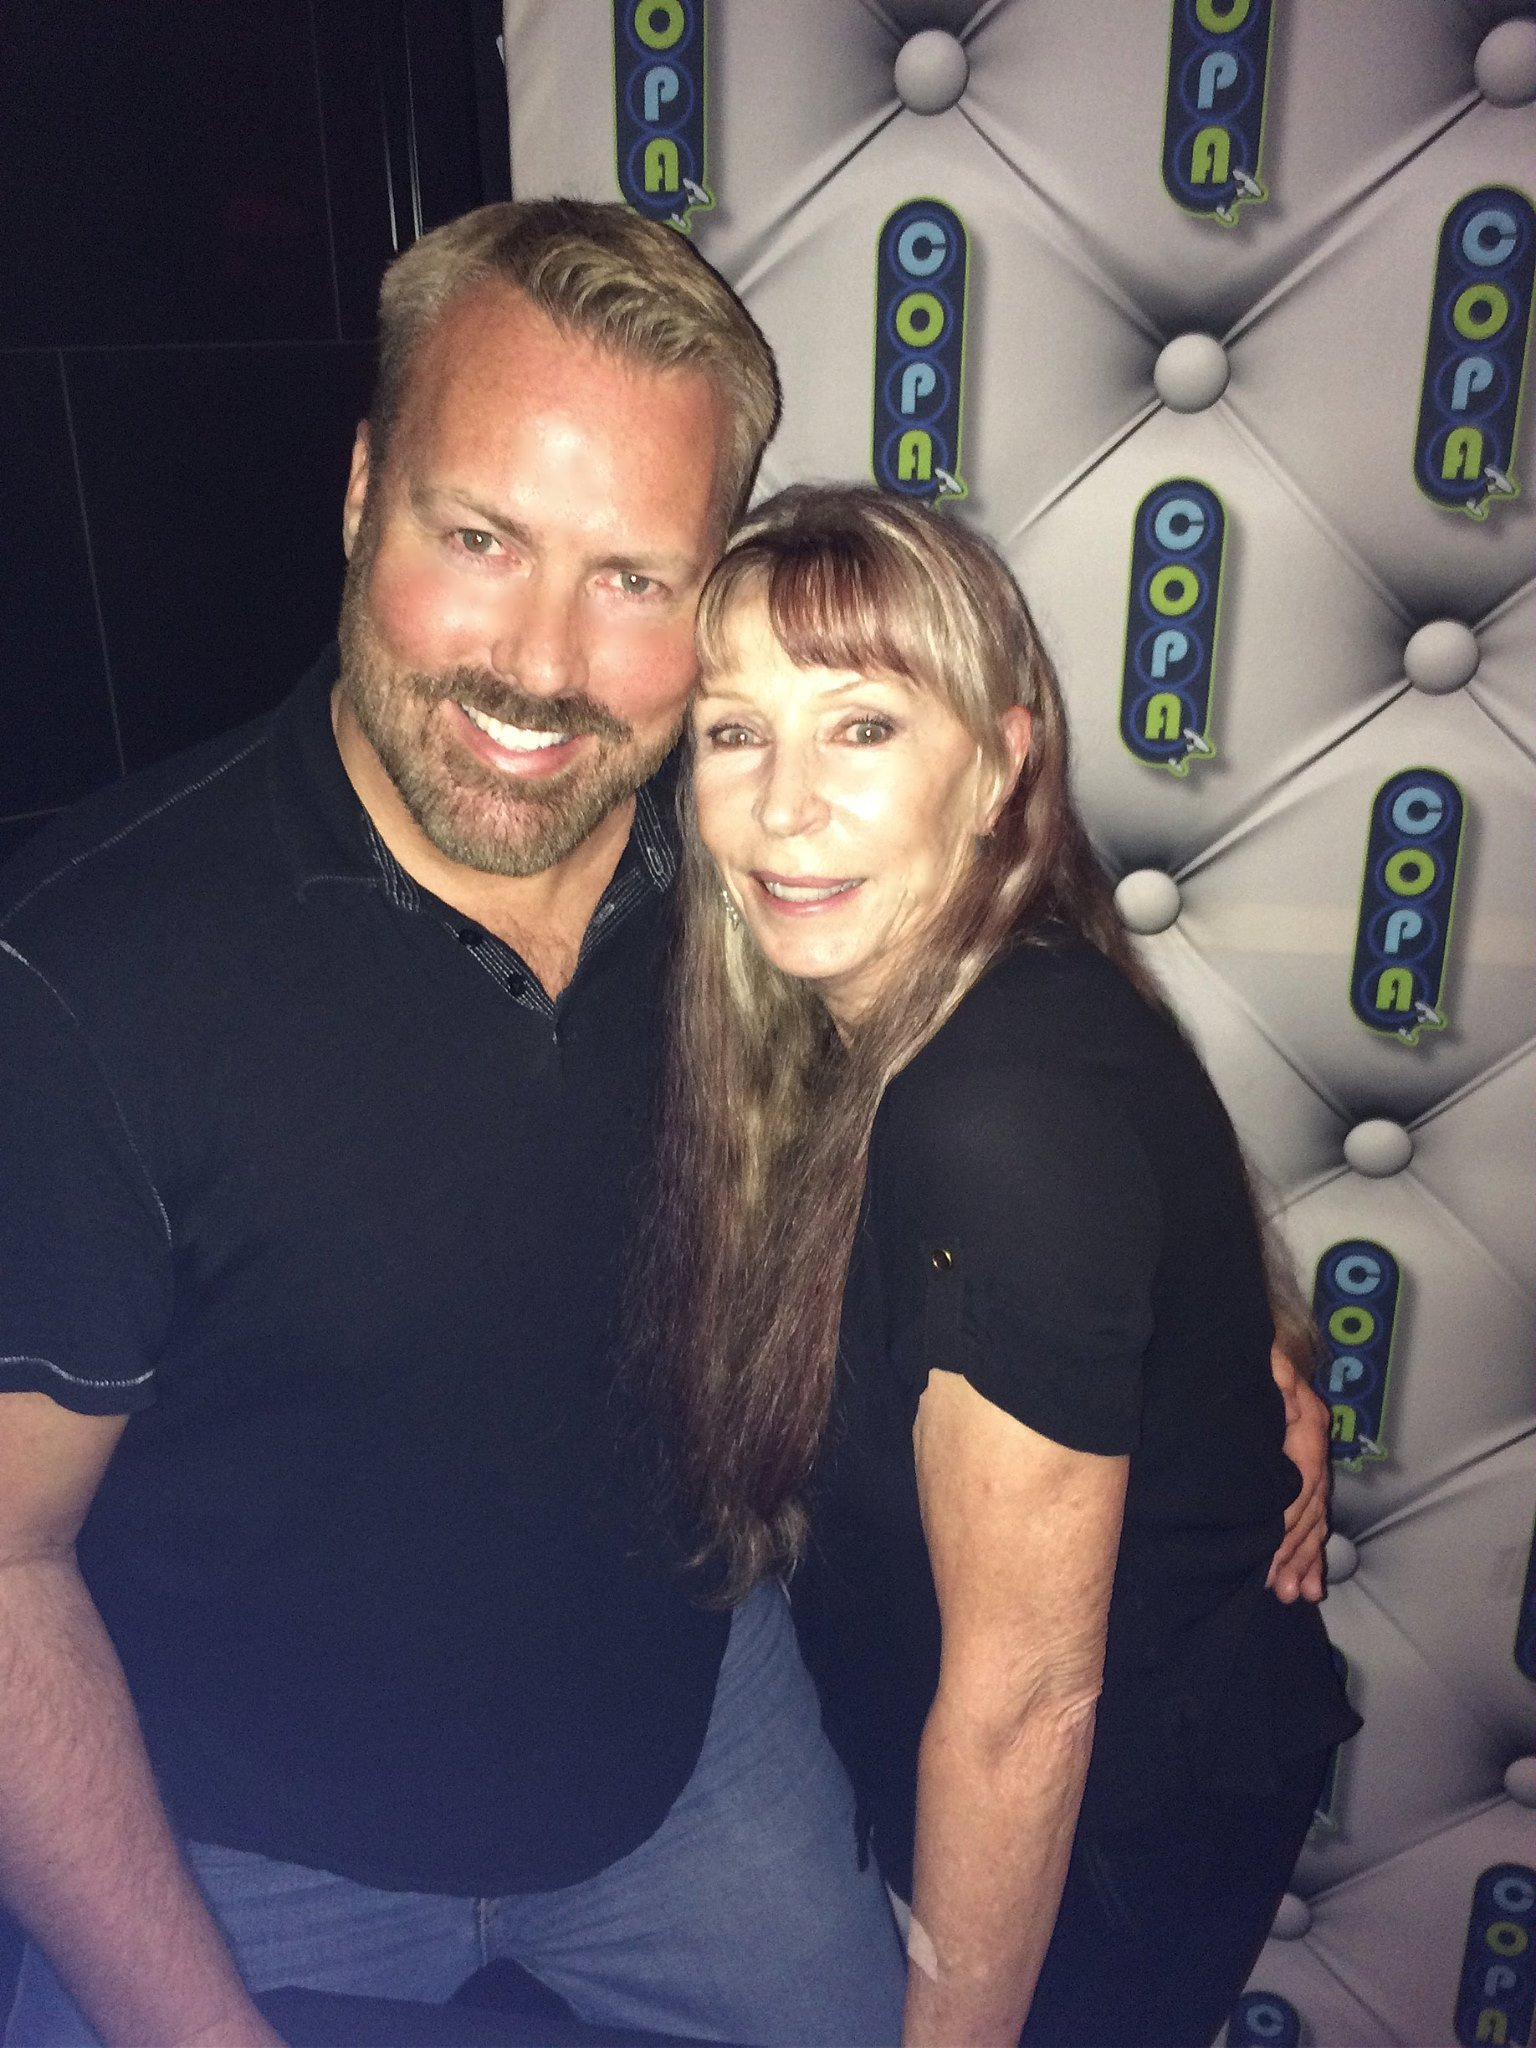 Juice Newton With a Fan